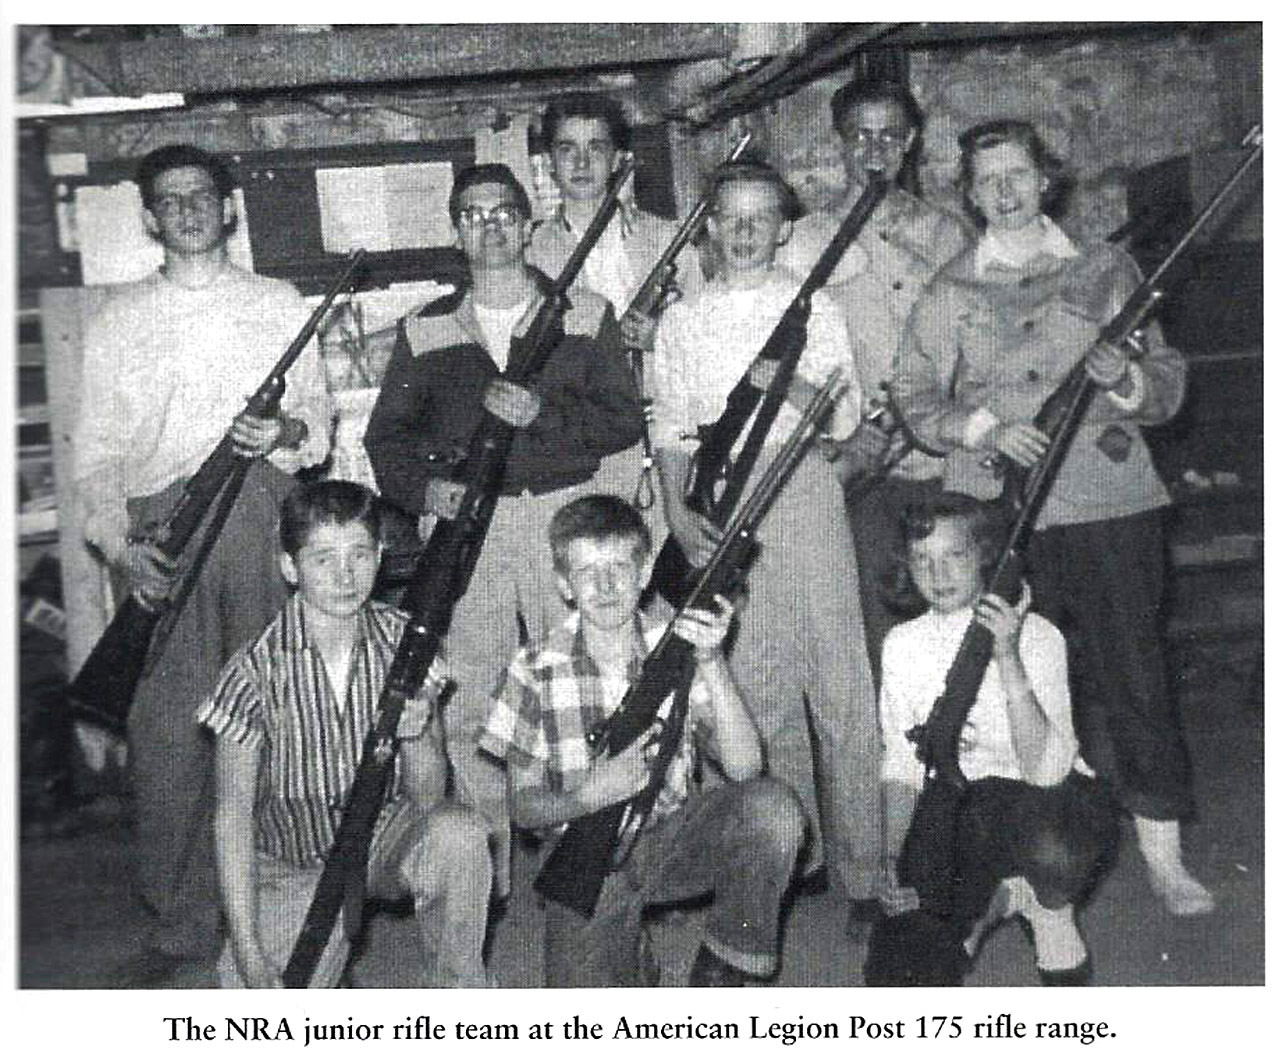 Gerry Souter, second from the left in the middle row, stands with his rifle team at an American Legion range in 1956. Souter says, at the time, rifle-shooting was considered a wholesome sport, but political polarization around guns changed that perception in the 1960s and 1970s. (Photo courtesy Gerry Souter, from his book 'The American Shooter: A Personal History of Gun Culture In The United States')